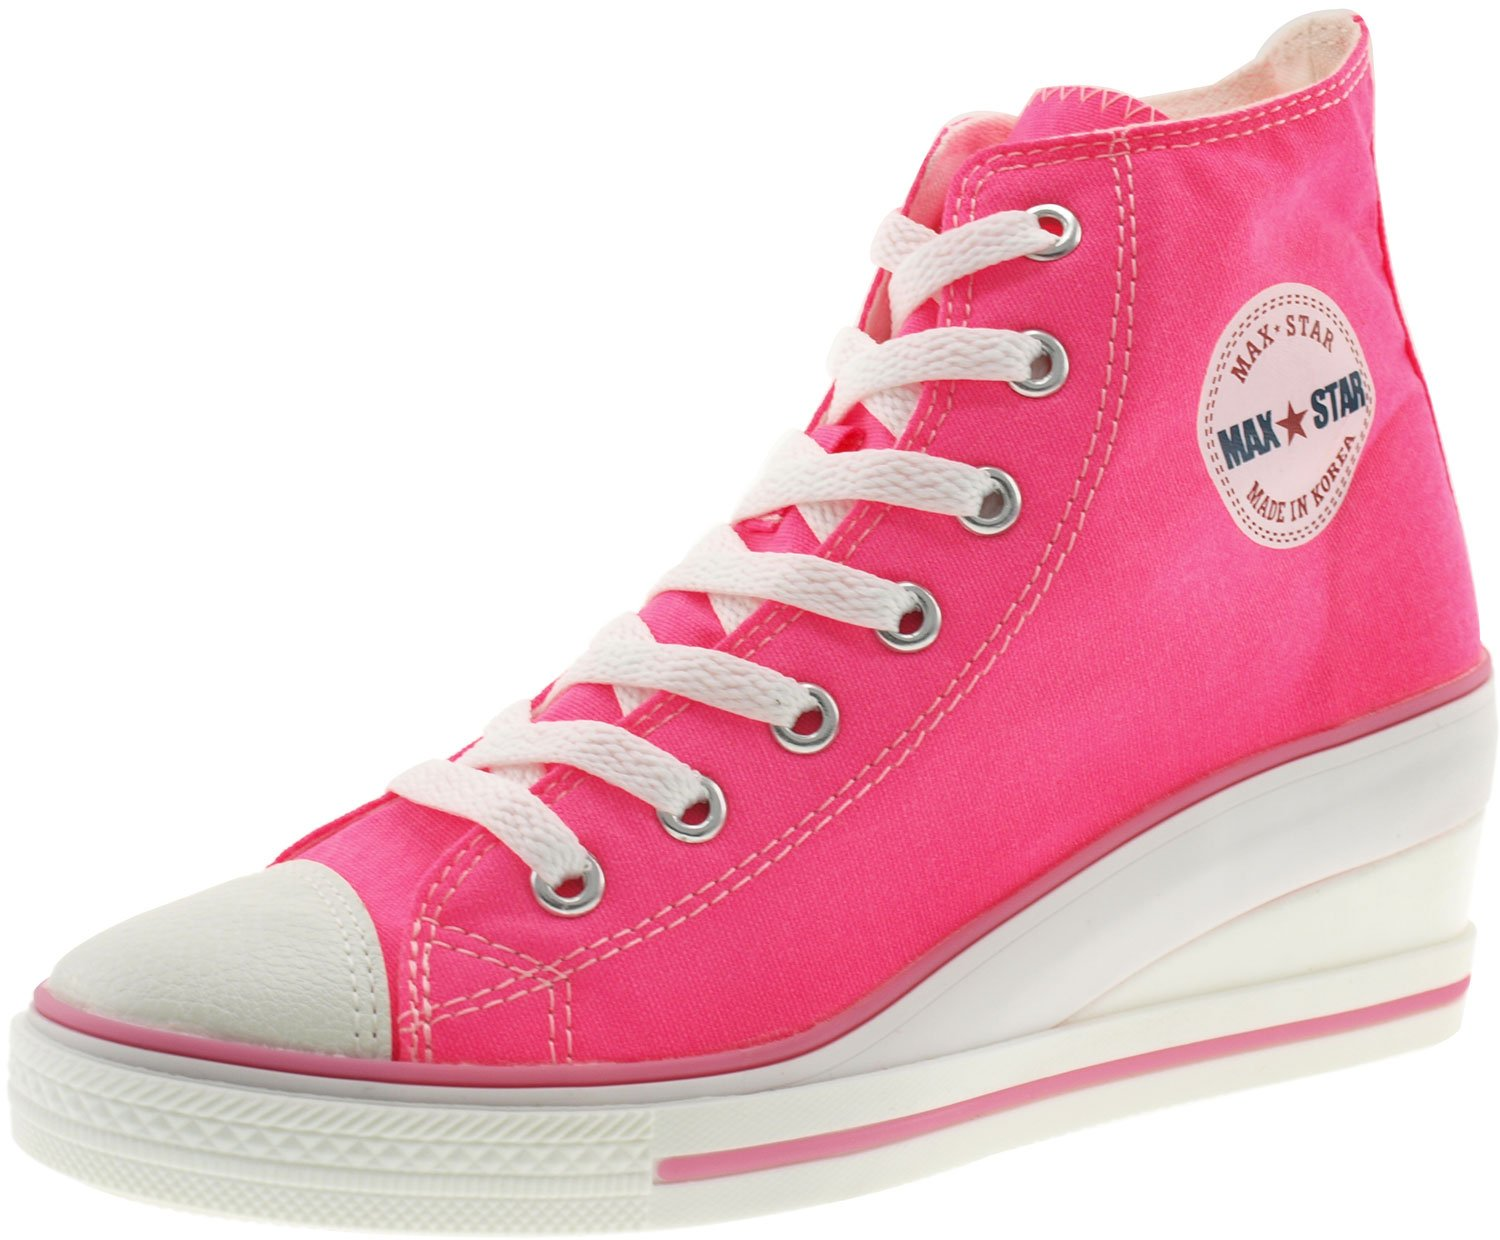 Maxstar Women's 7H Zipper Low Wedge Heel Sneakers B00XOZW8XA 6 B(M) US|Neon Pink